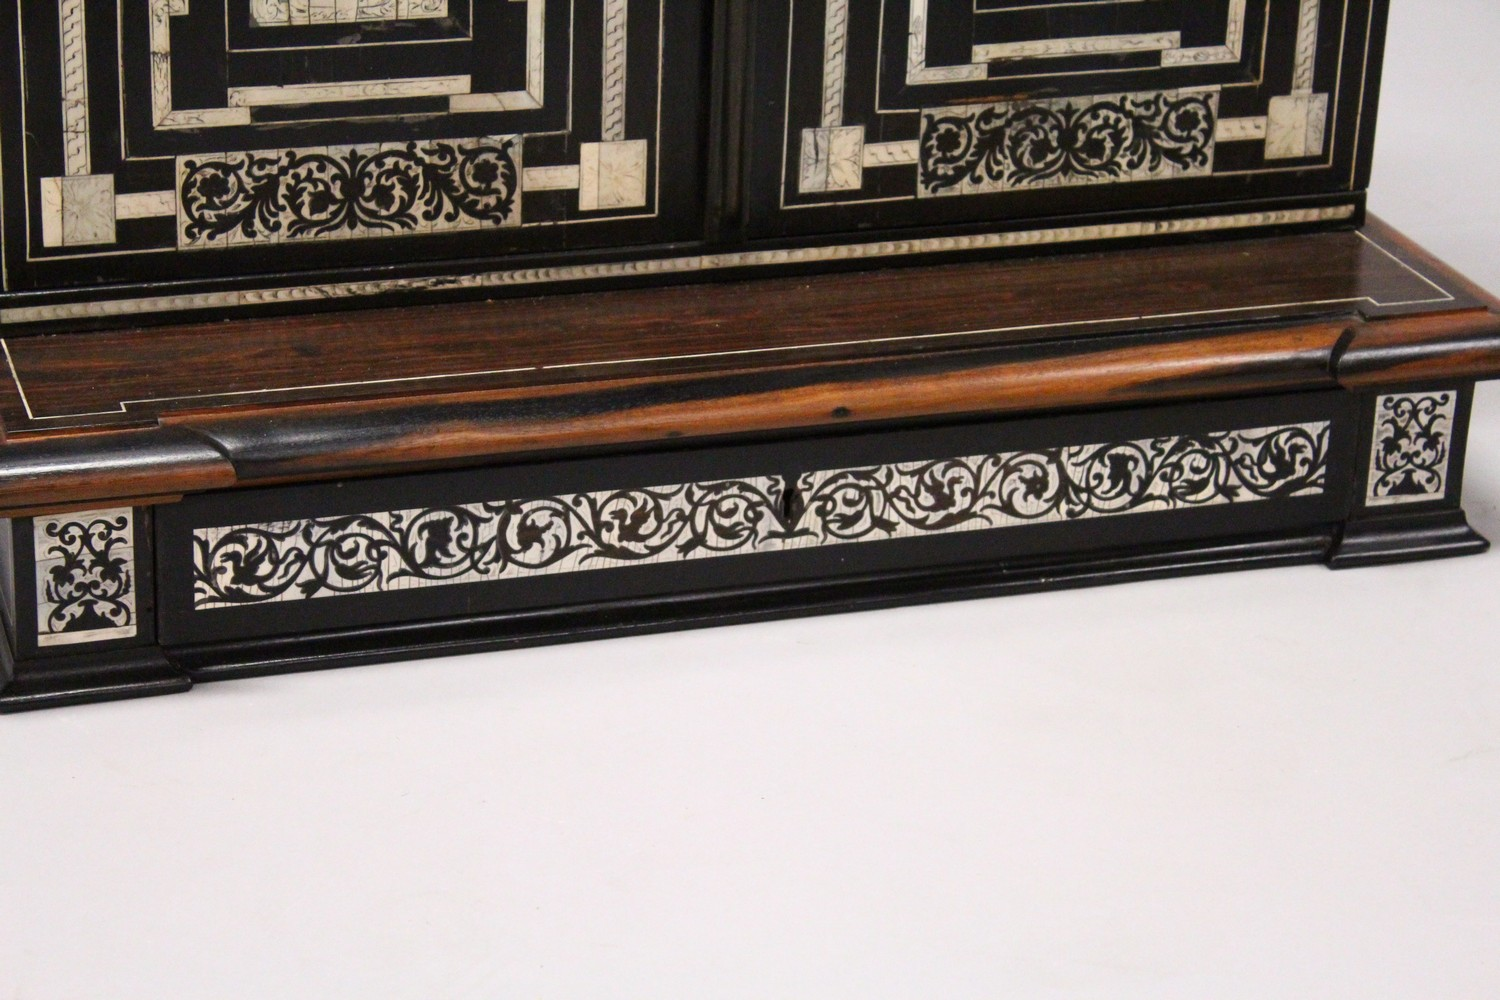 AN IVORY INLAID EBONY TABLE CABINET, the pair of doors inlaid with ached panels decorated with - Image 3 of 8